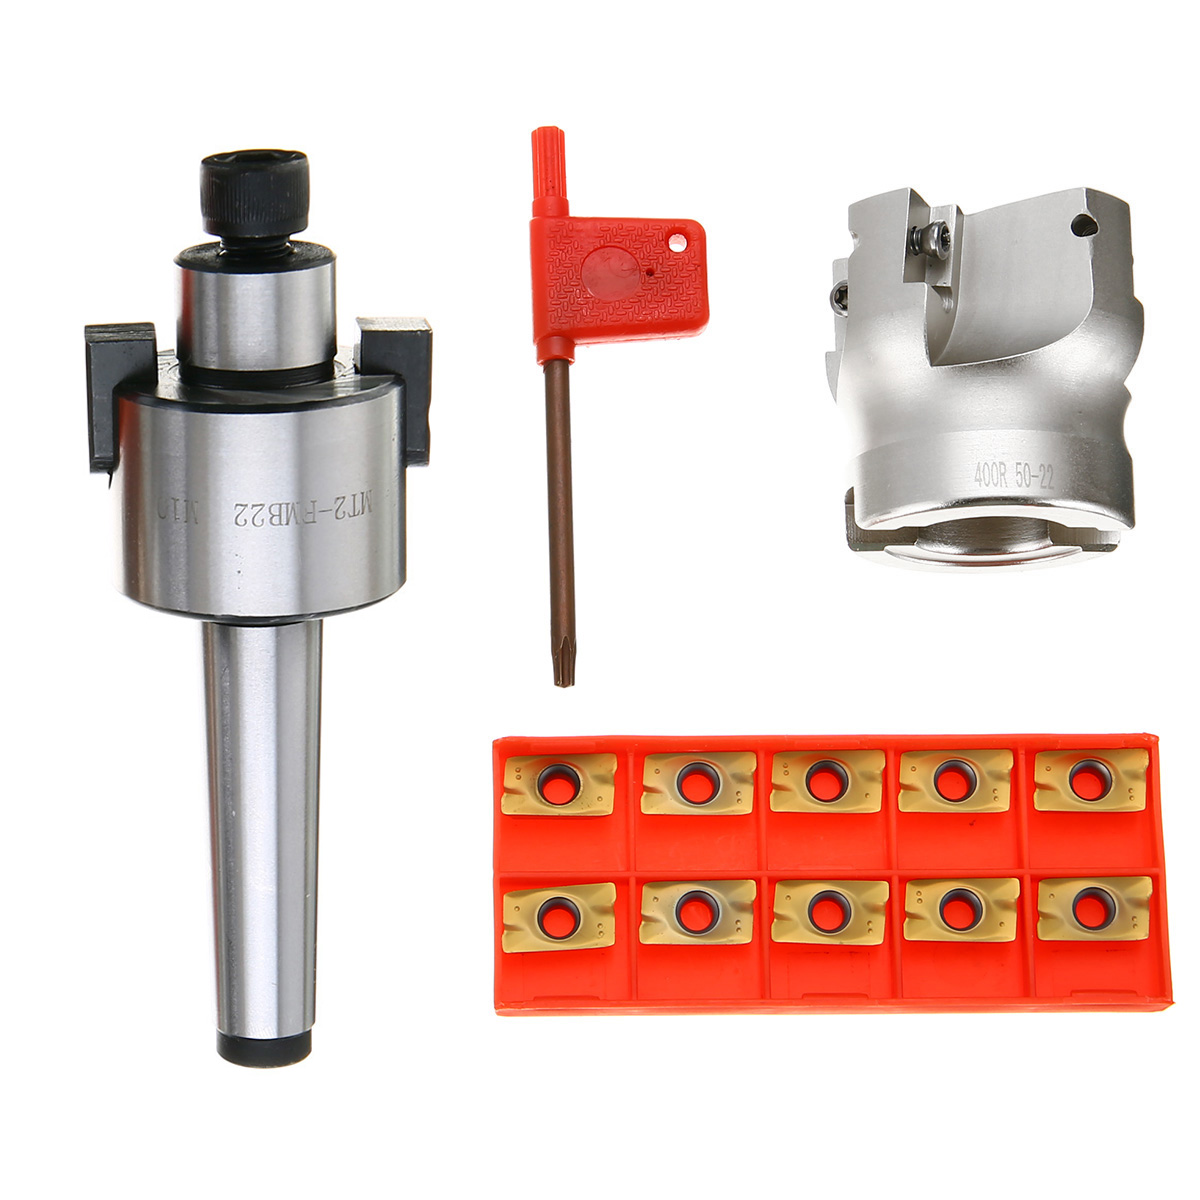 1 Set Metal Milling Cutter Tools MT2 400R 50mm Face End Mill Cutter + 10pcs APMT1604 Carbide Inserts with Wrench Spanner